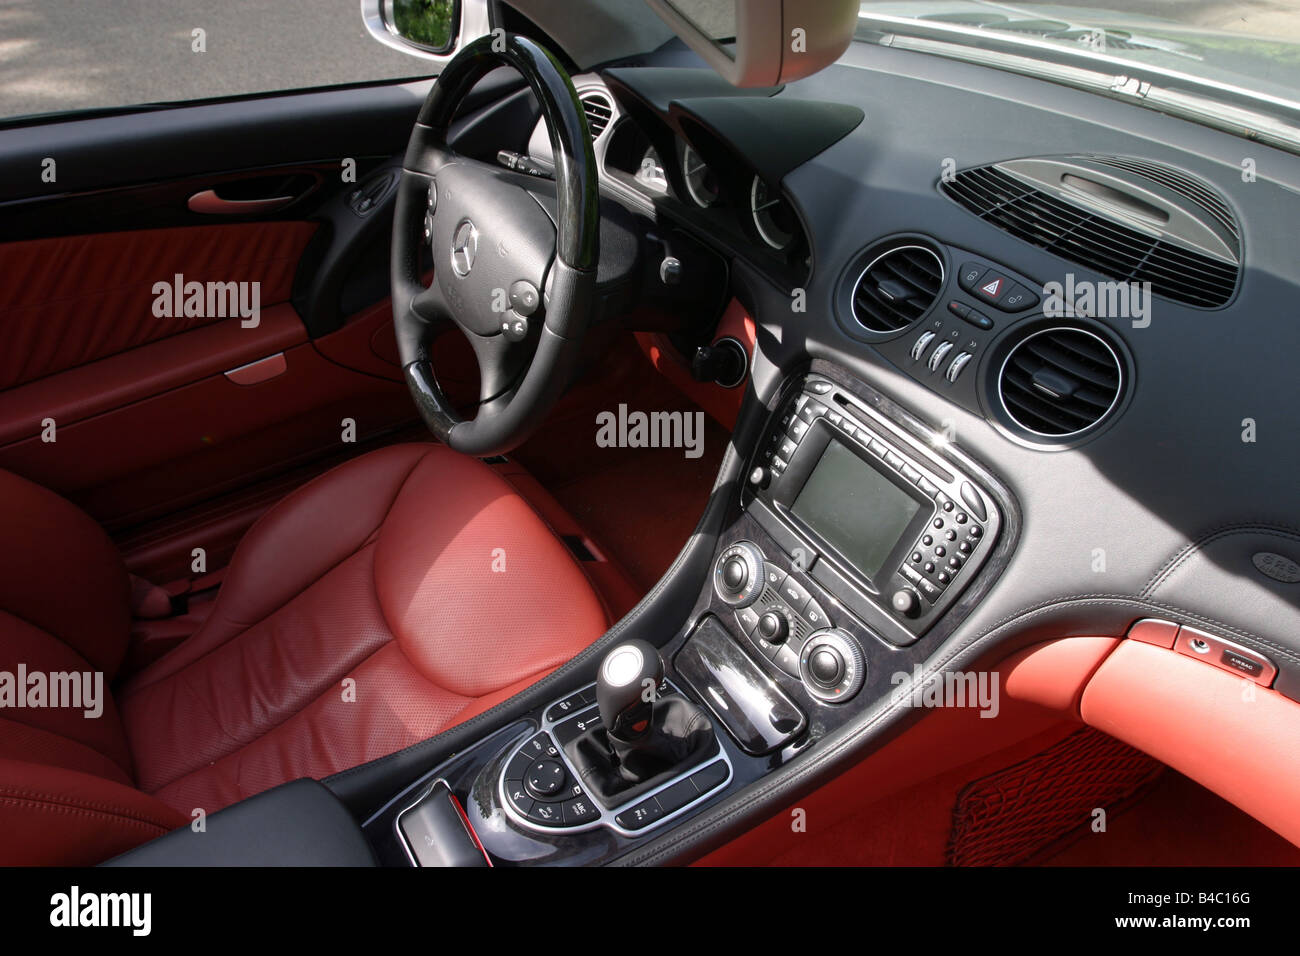 car smart roadster convertible model year 2002 blue silver stock photo royalty free image. Black Bedroom Furniture Sets. Home Design Ideas